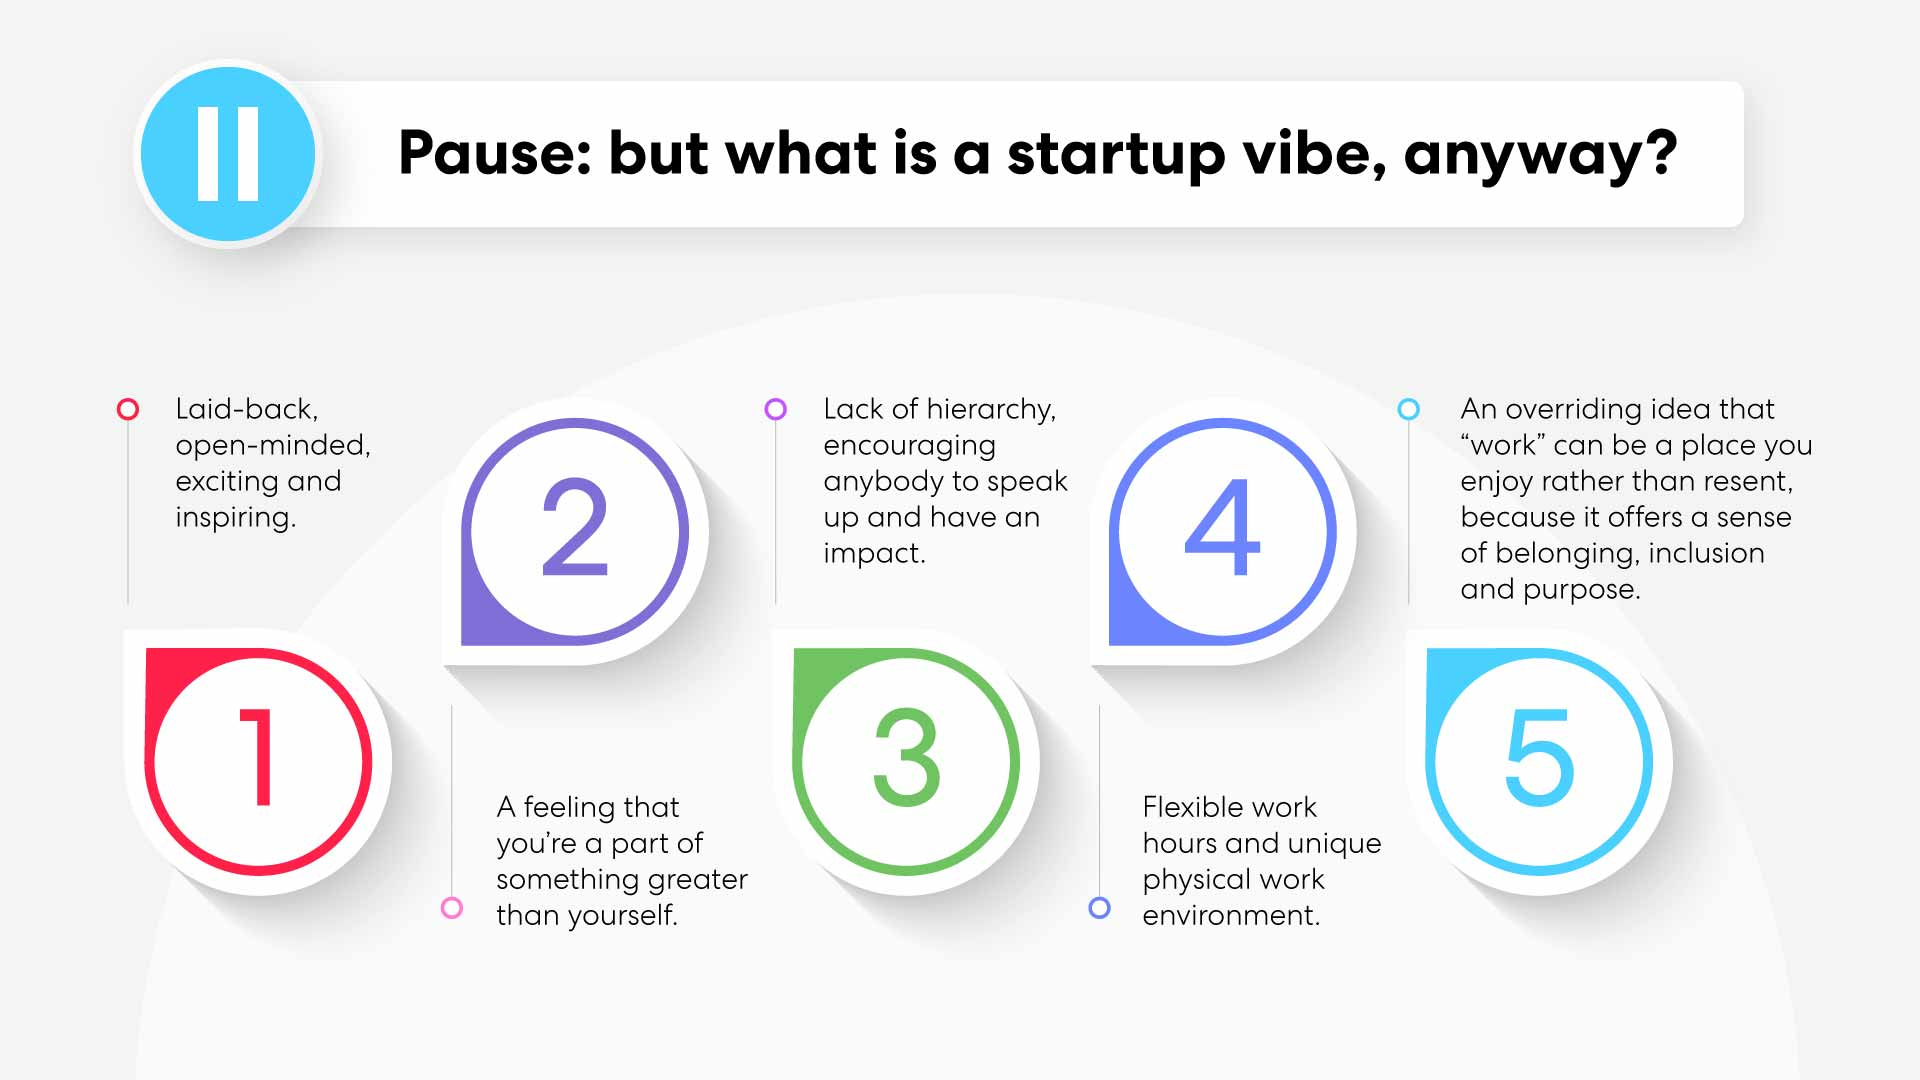 What is a startup vibe?